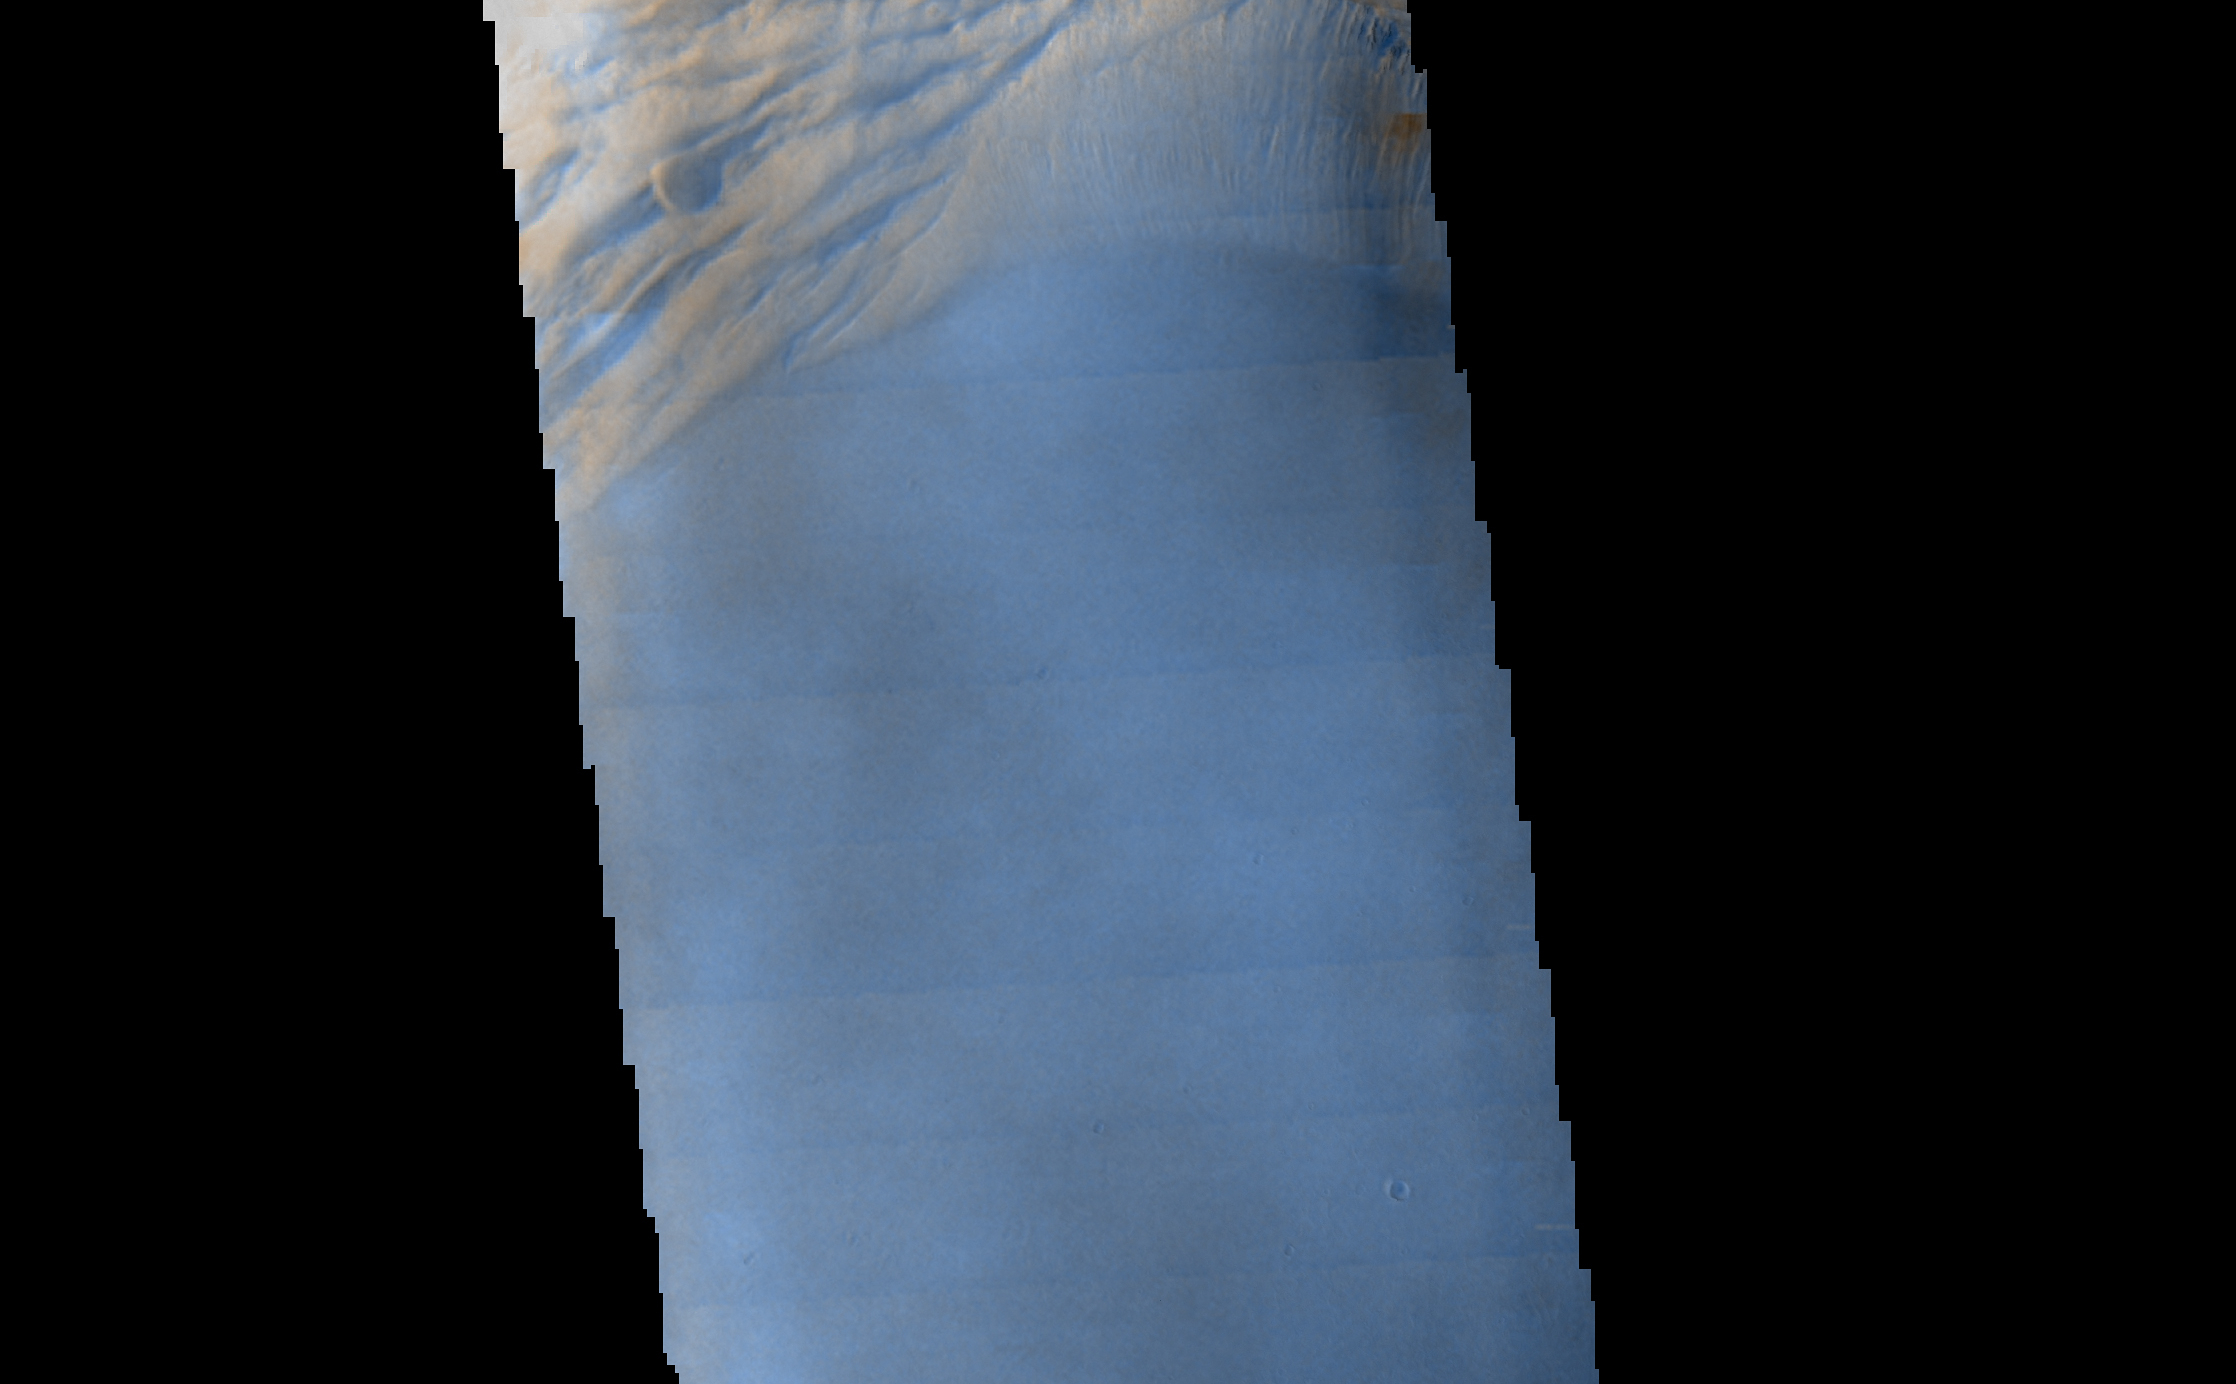 Seen shortly after local Martian sunrise, clouds gather in the summit pit, or caldera, of Arsia Mons, a giant volcano on Mars, in this image from the Thermal Emission Imaging System (THEMIS) on NASA's Mars Odyssey orbiter.